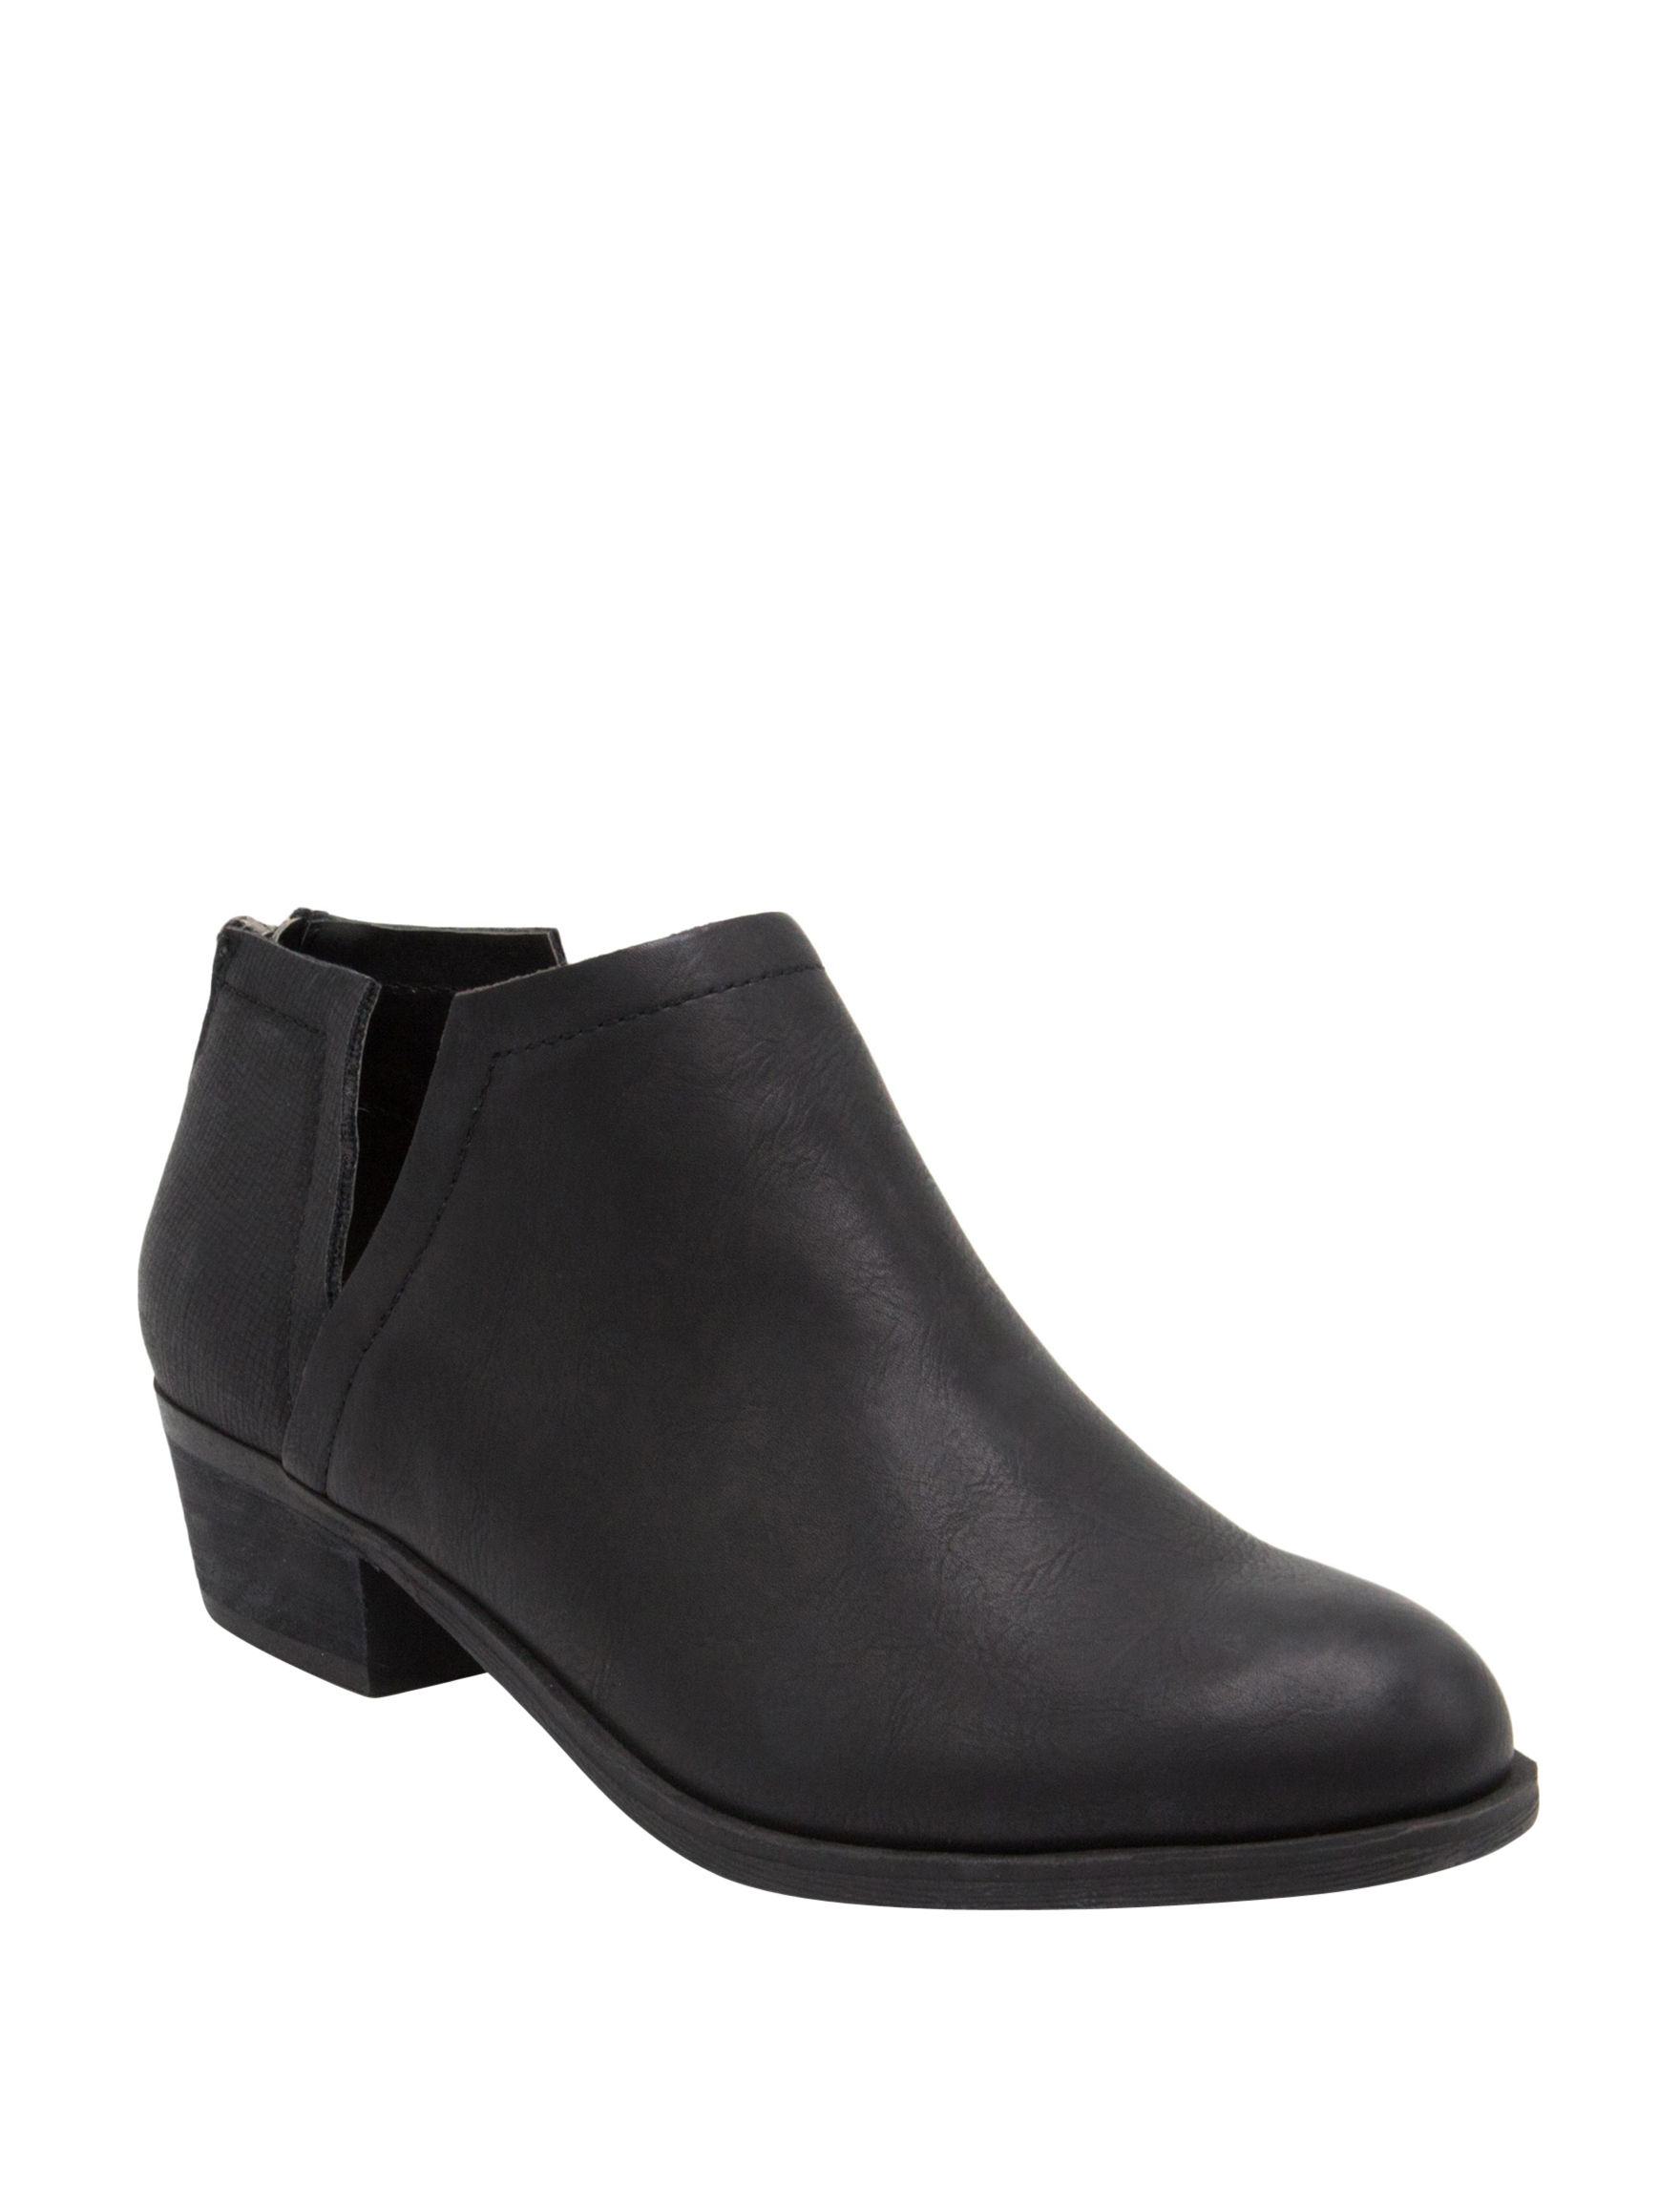 Sugar Black Ankle Boots & Booties